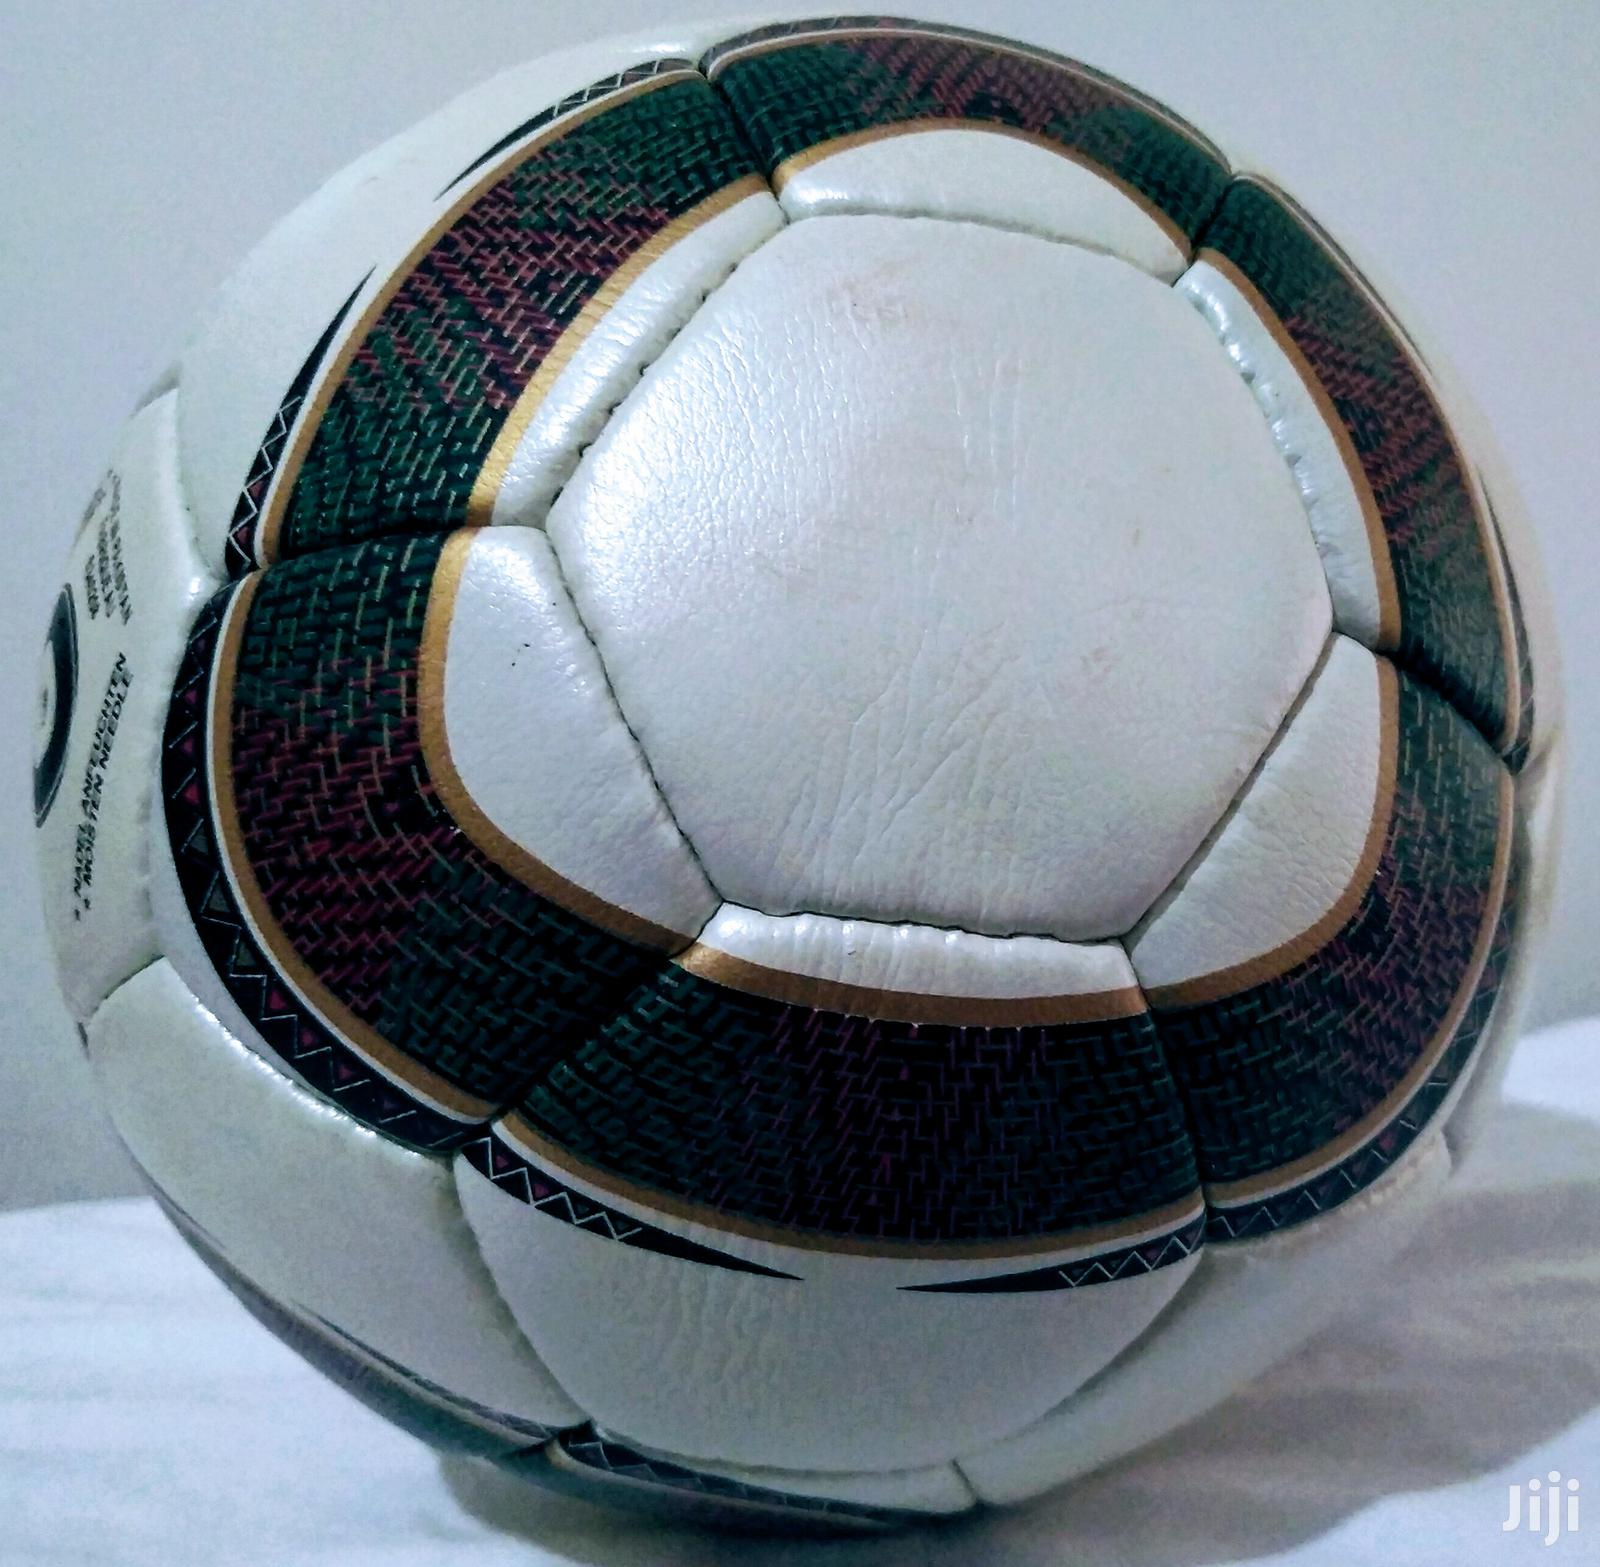 Original Jabulani Soccer Ball